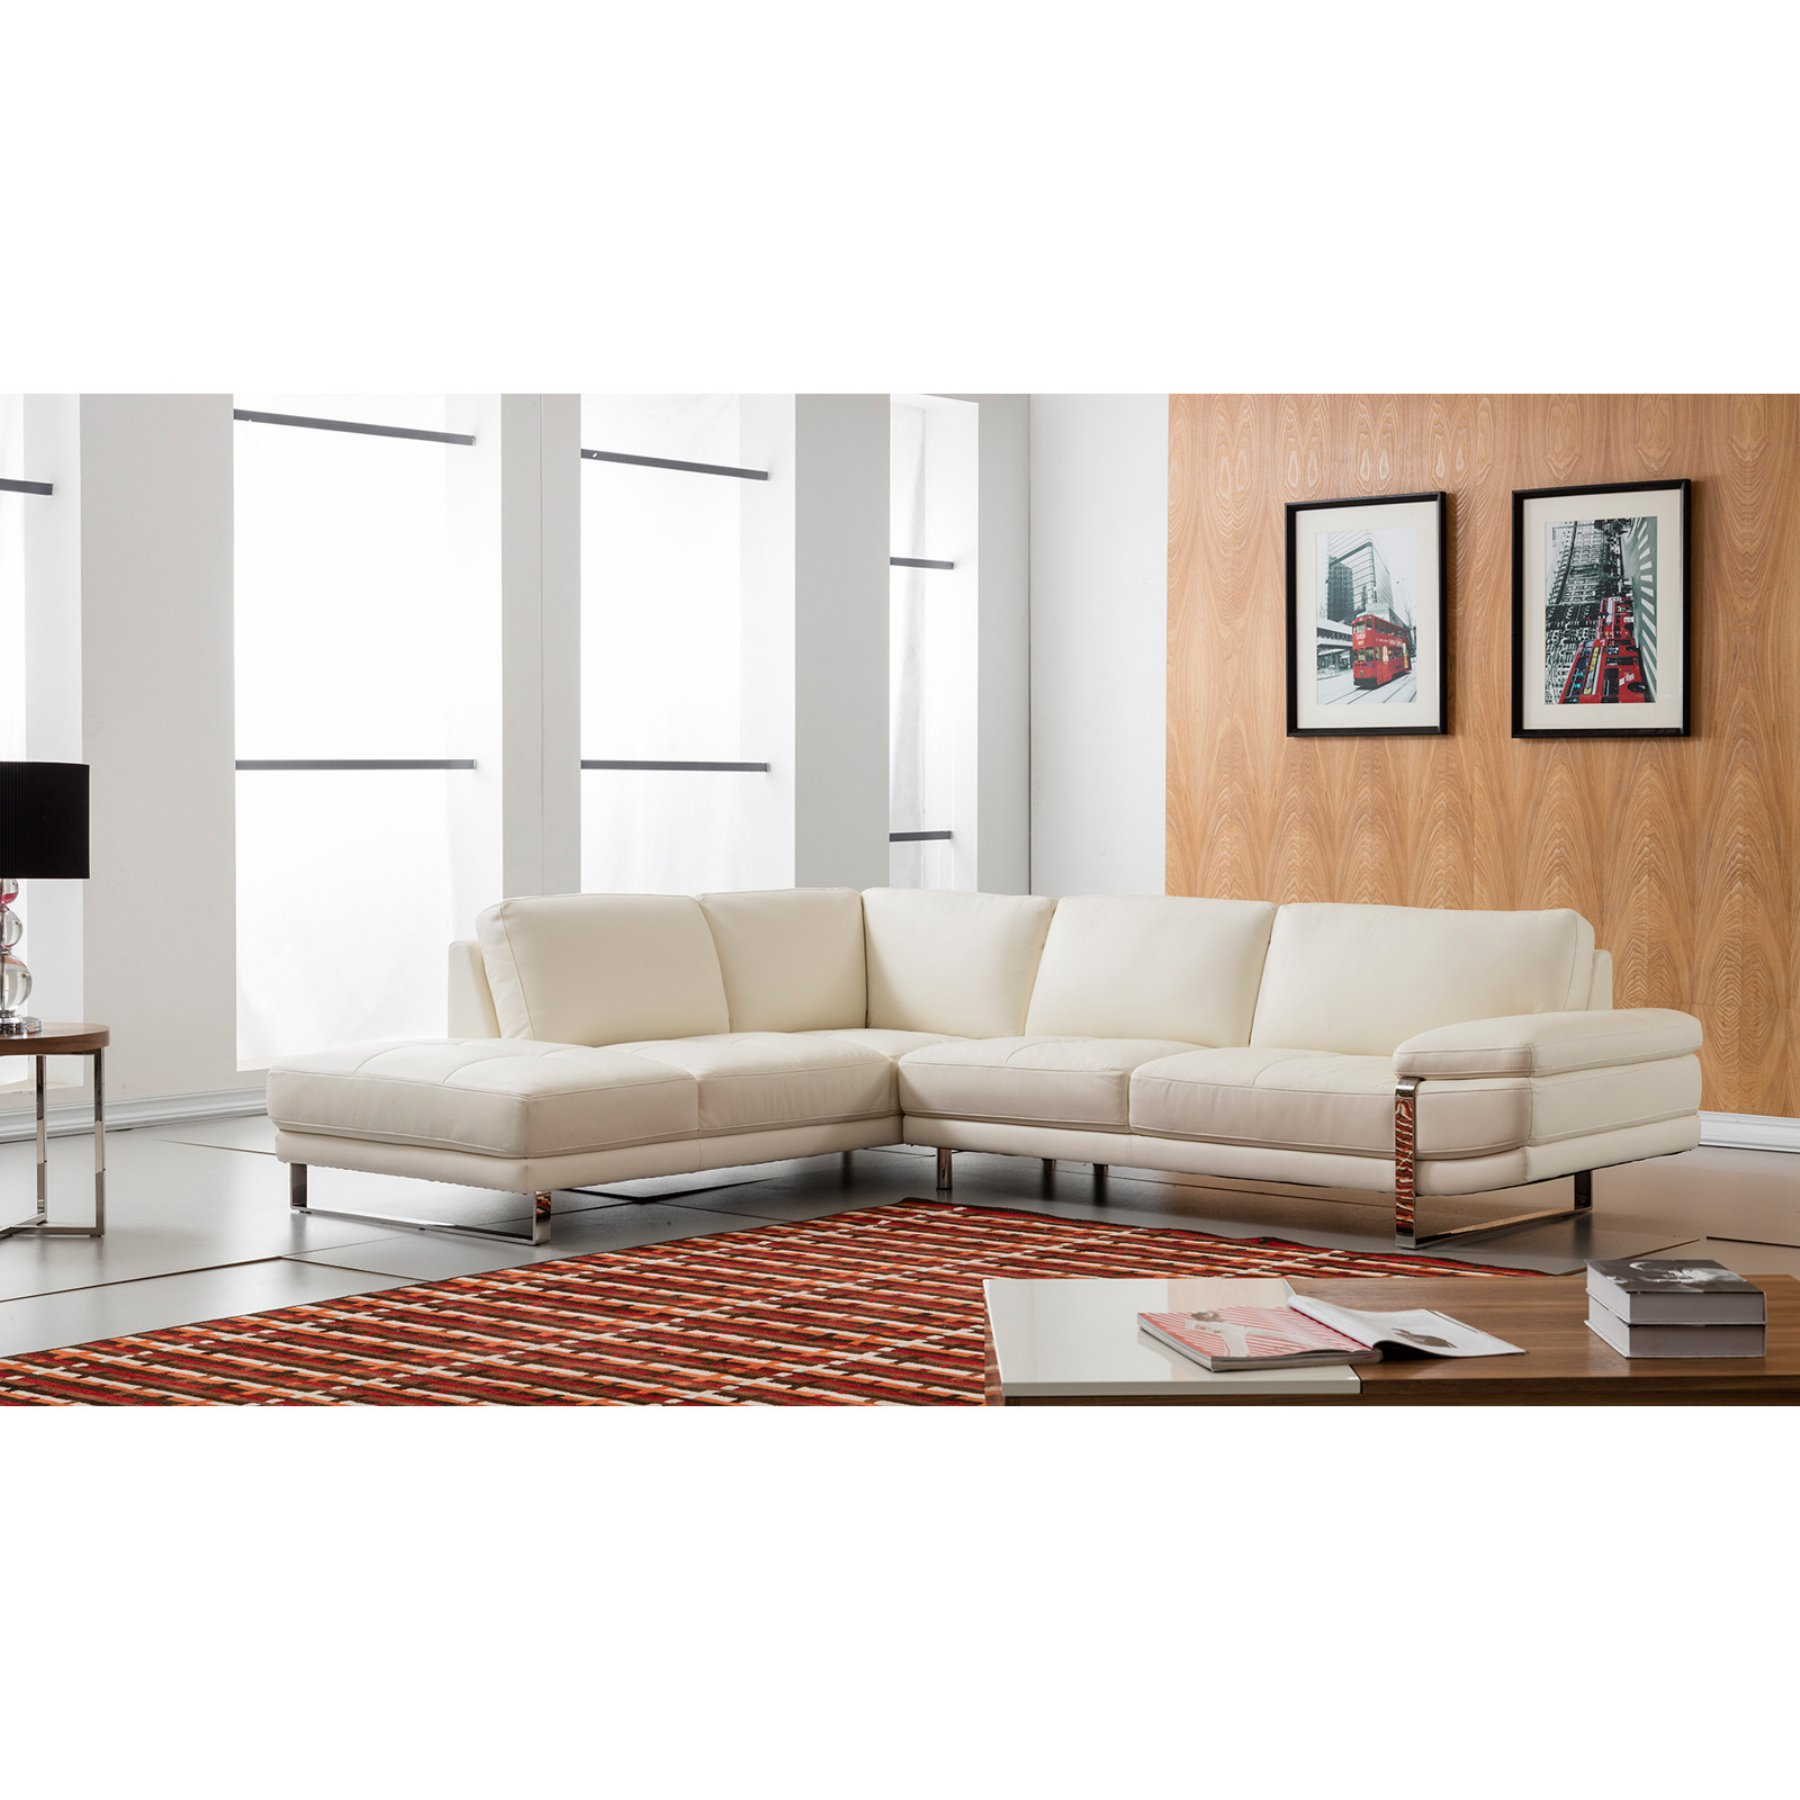 american eagle furniture chelsea white italian leather sectional rh pinterest com